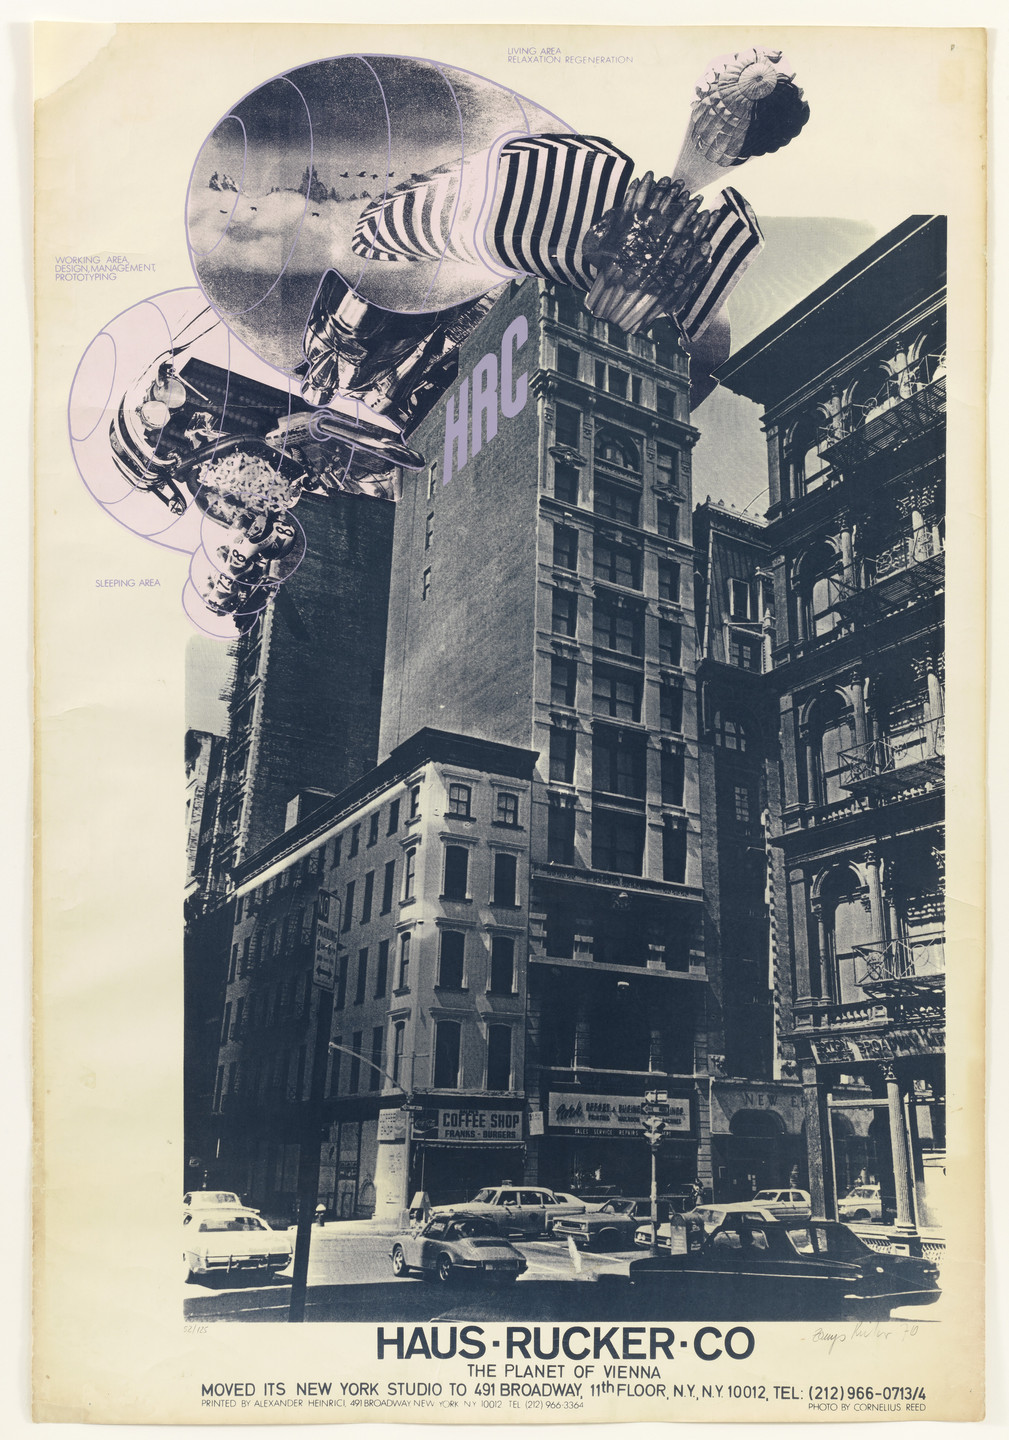 Günter Zamp Kelp, Klaus Pinter. The Planet of Vienna, Rooftop Oasis Project, New York, NY (Poster for the opening of Haus Rucker Studio). 1971